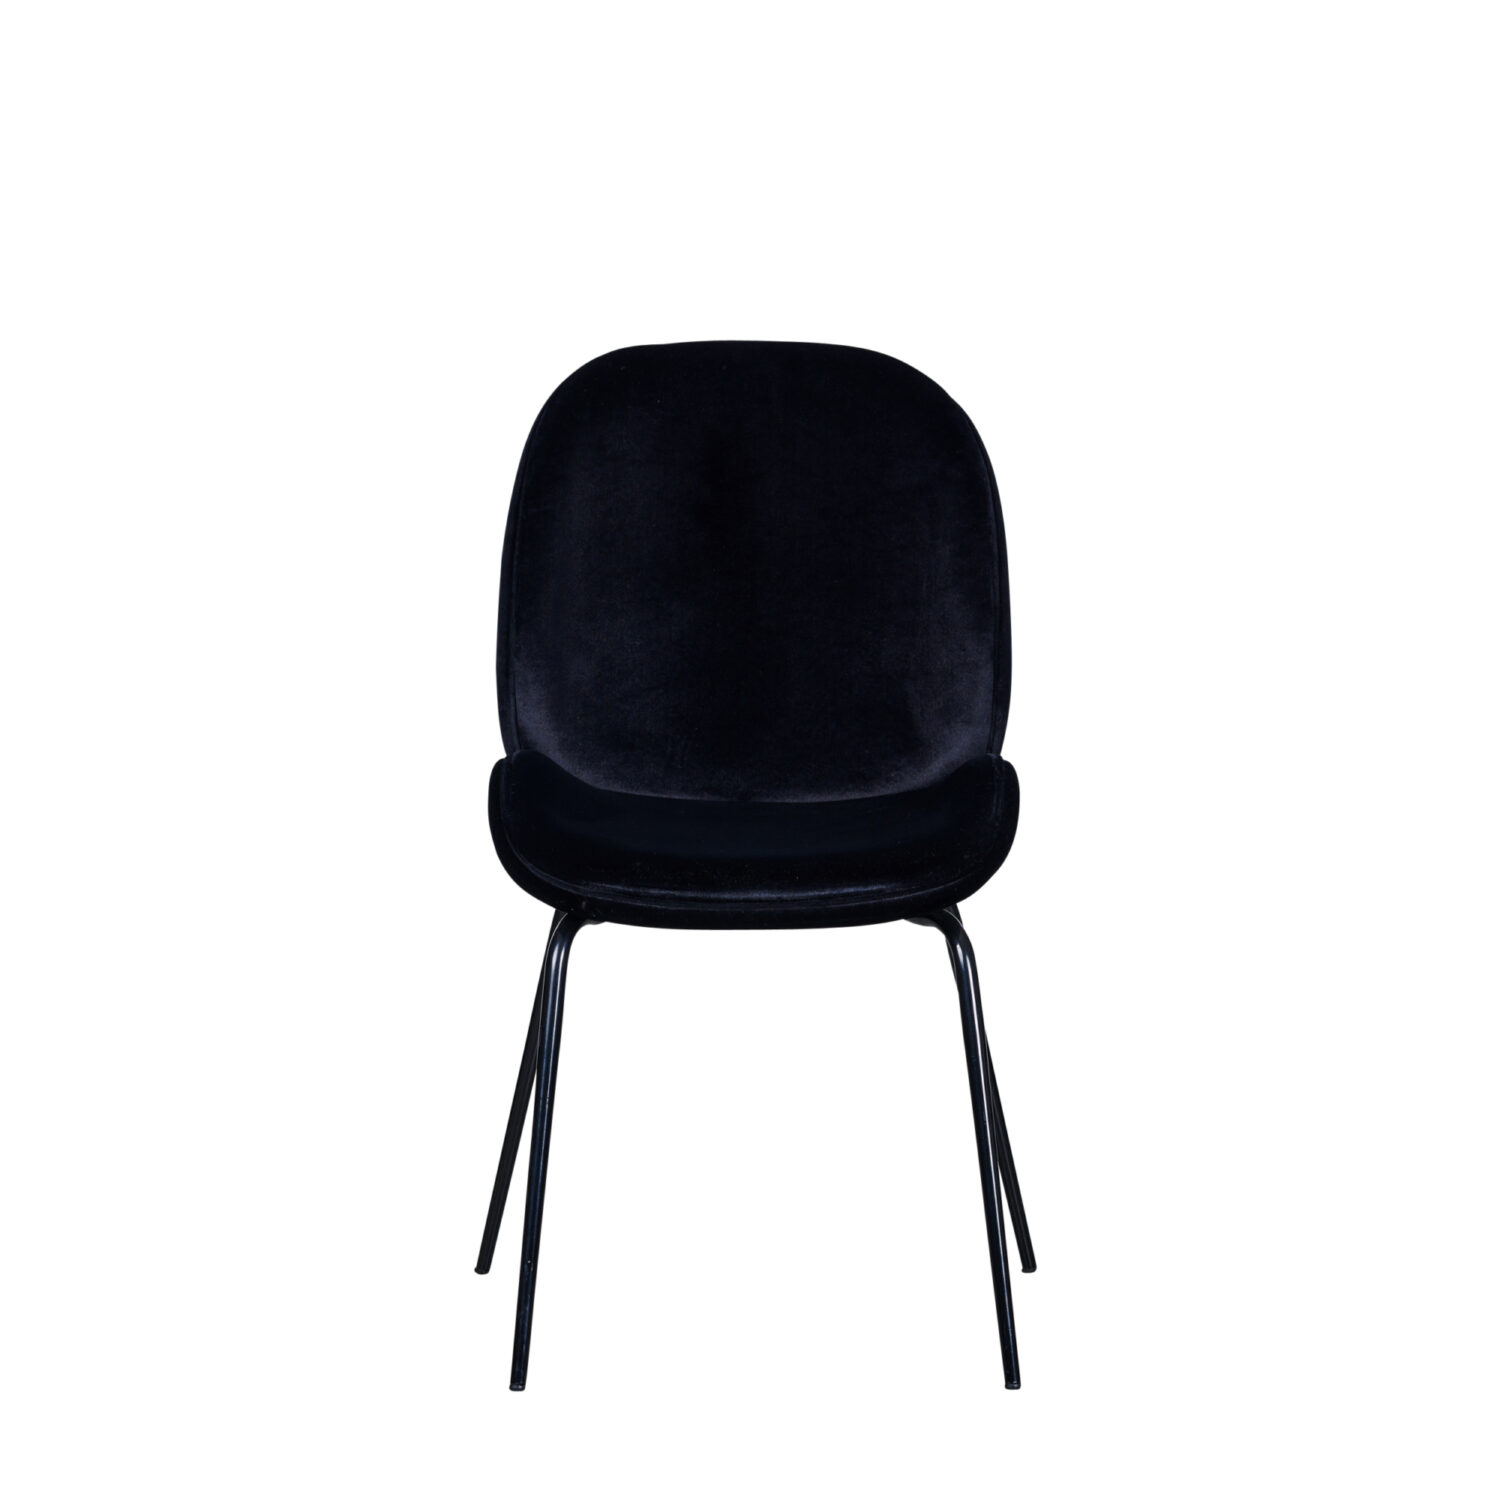 Grace Occasional Chair - Black Seat & Black Legs - Event Artillery